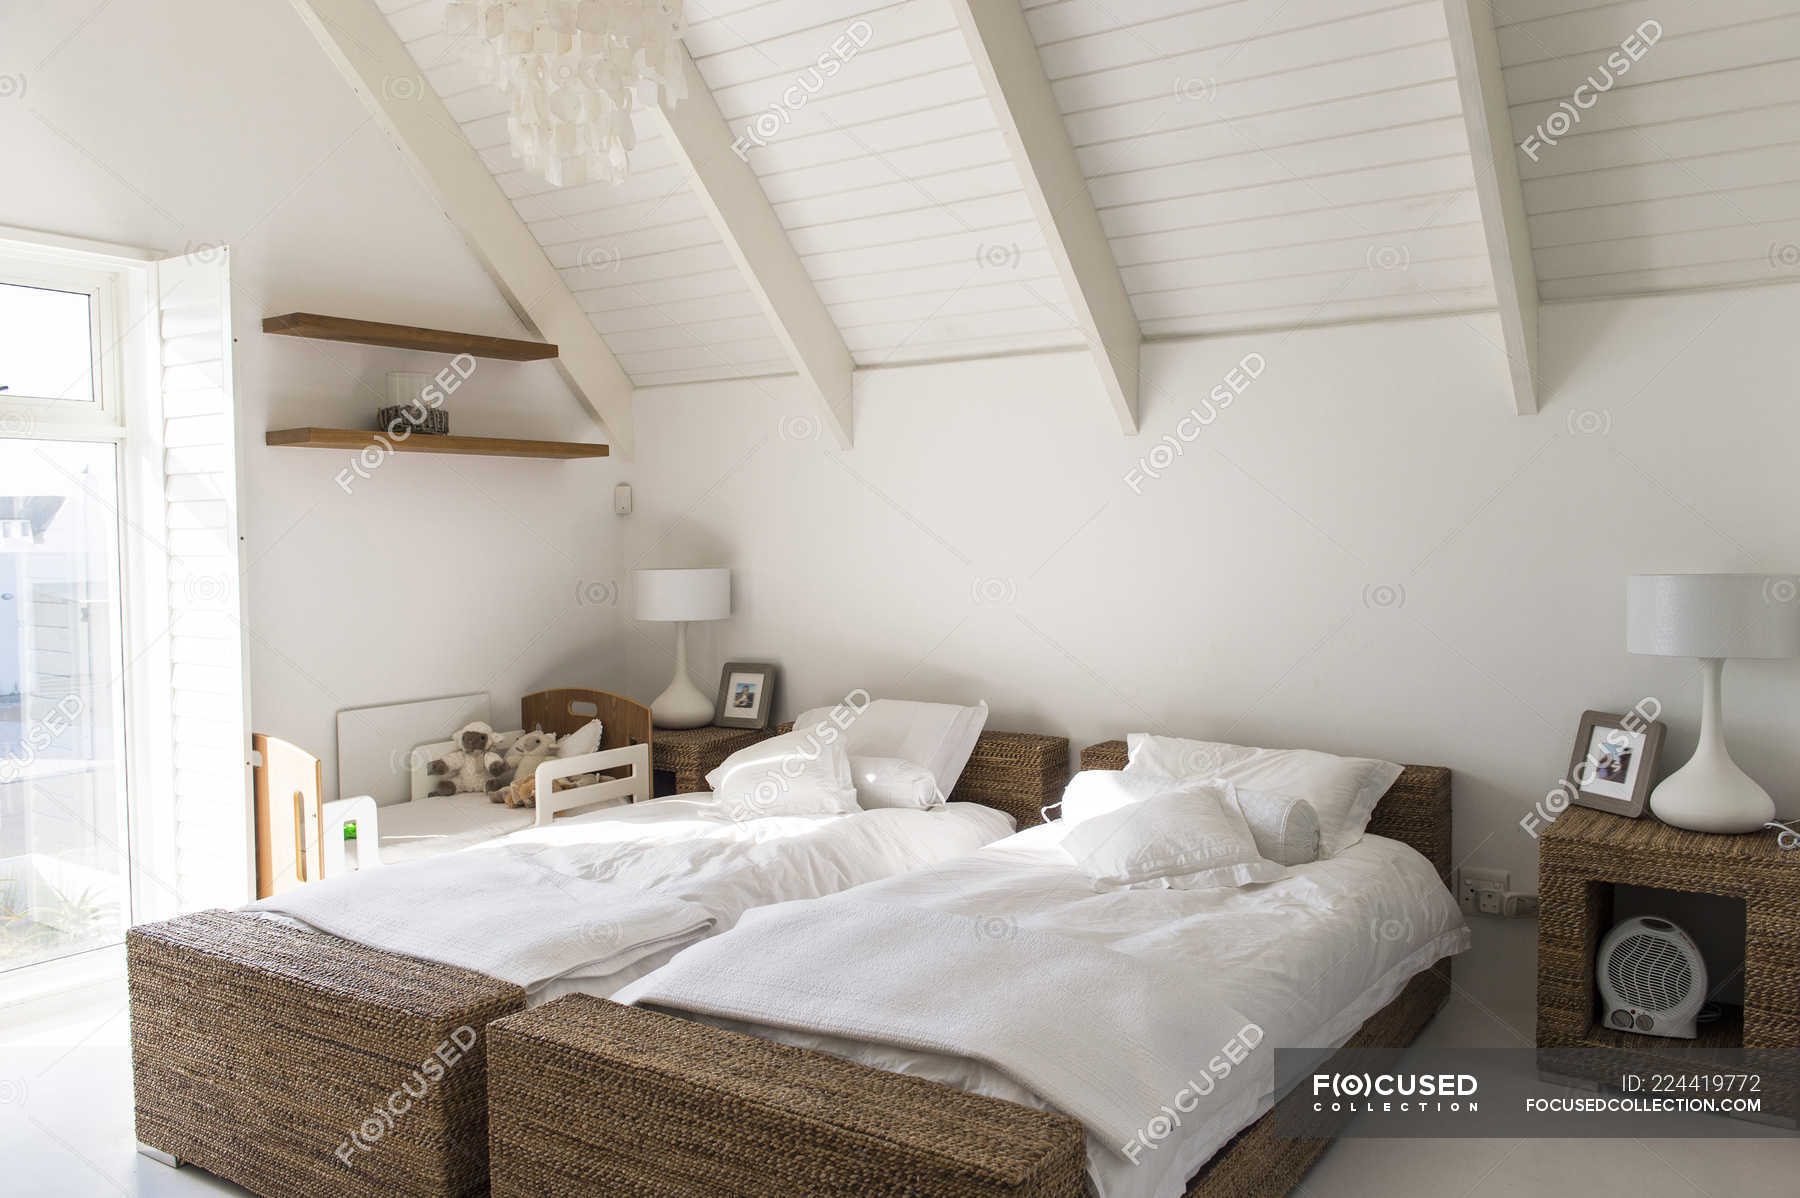 Interior Of Modern Light Bedroom With Two Single Beds Atmosphere Interior Design Stock Photo 224419772